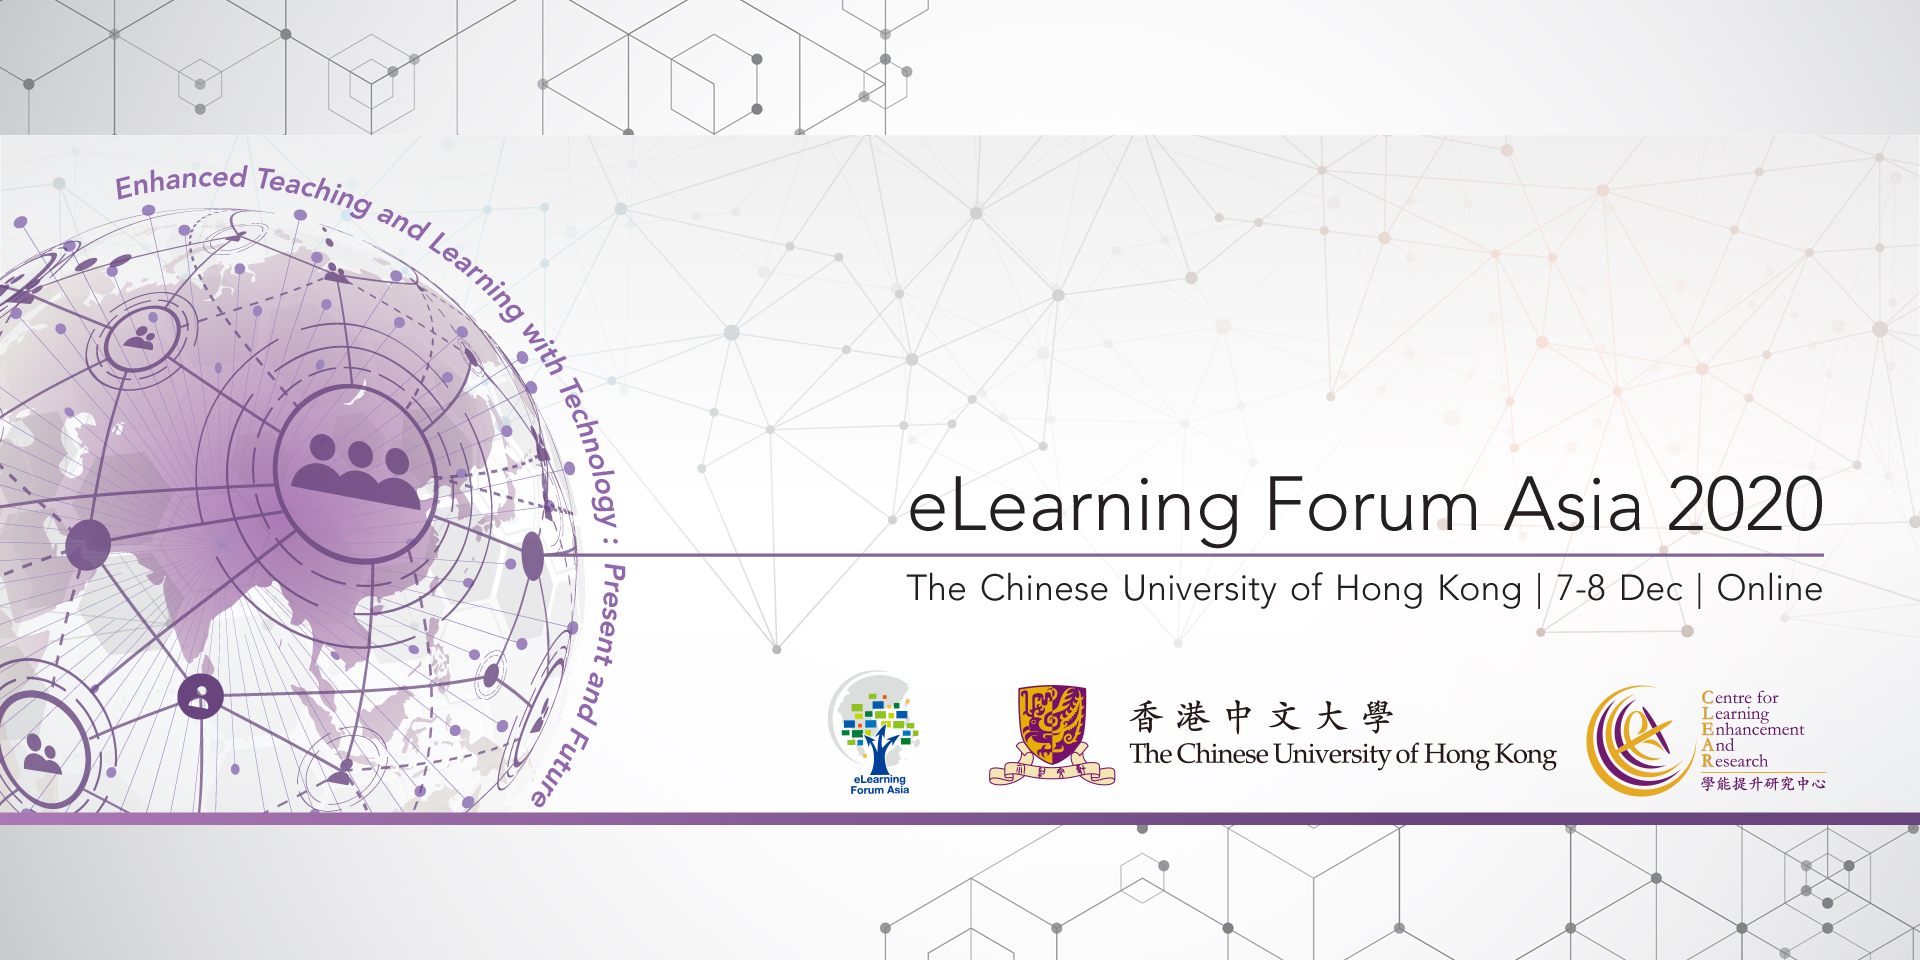 e-Learning Forum Asia 2020